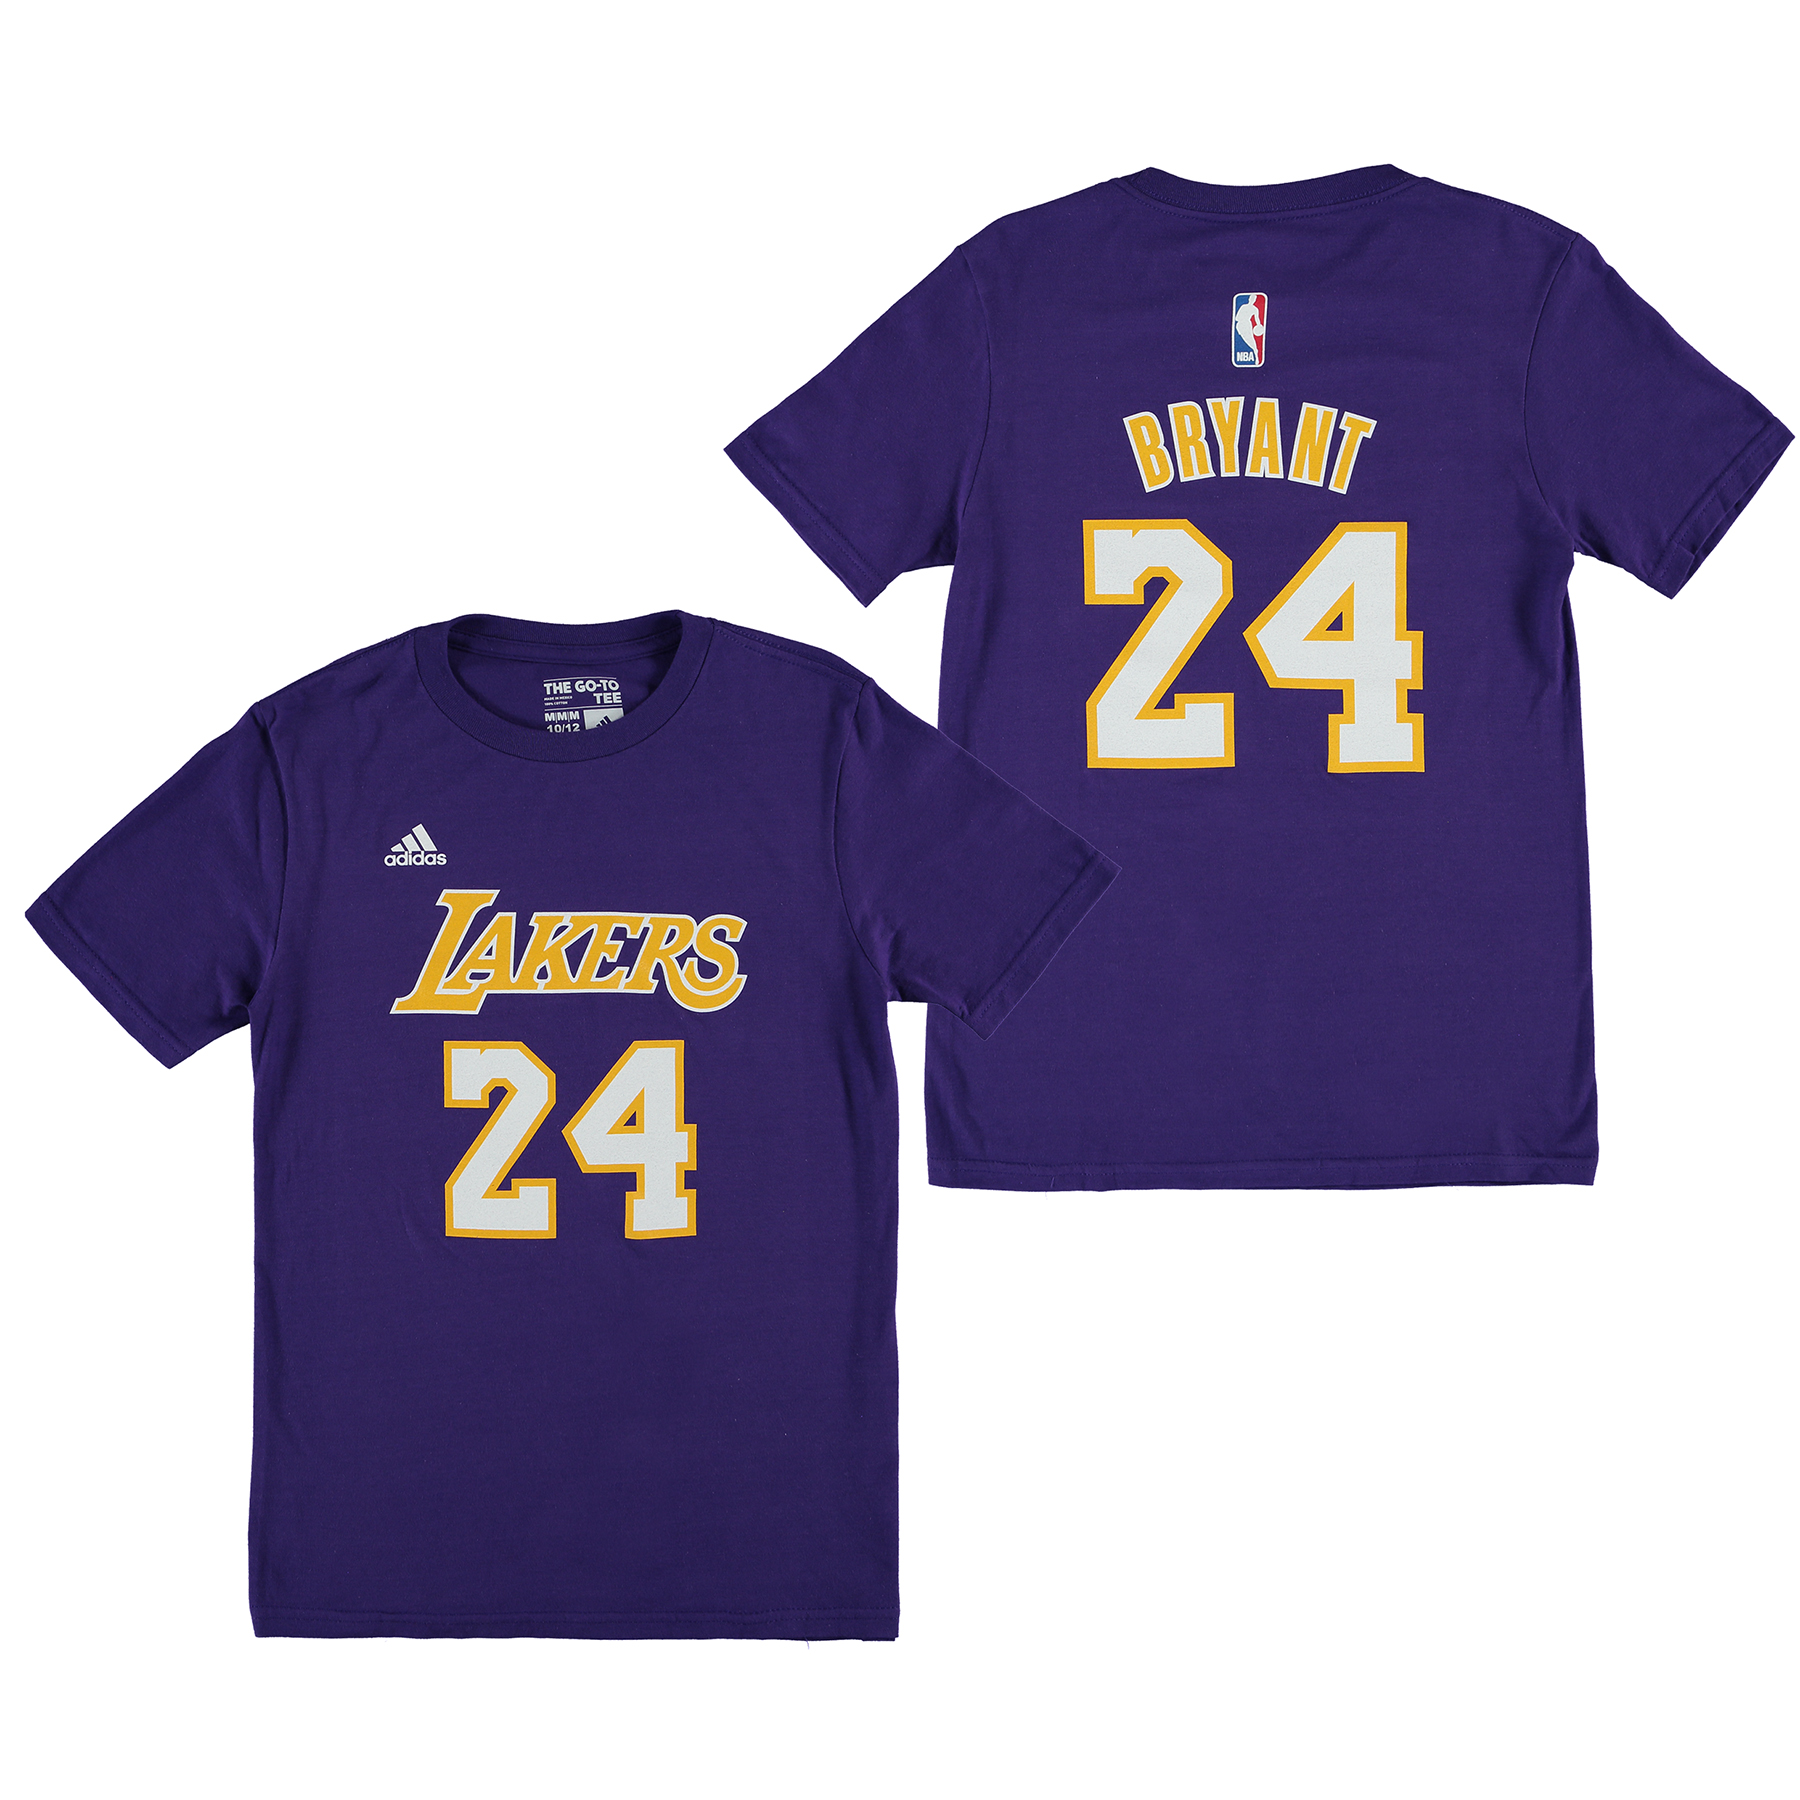 Los Angeles Lakers adidas Name & Number T-Shirt - Kobe Bryant - Youth